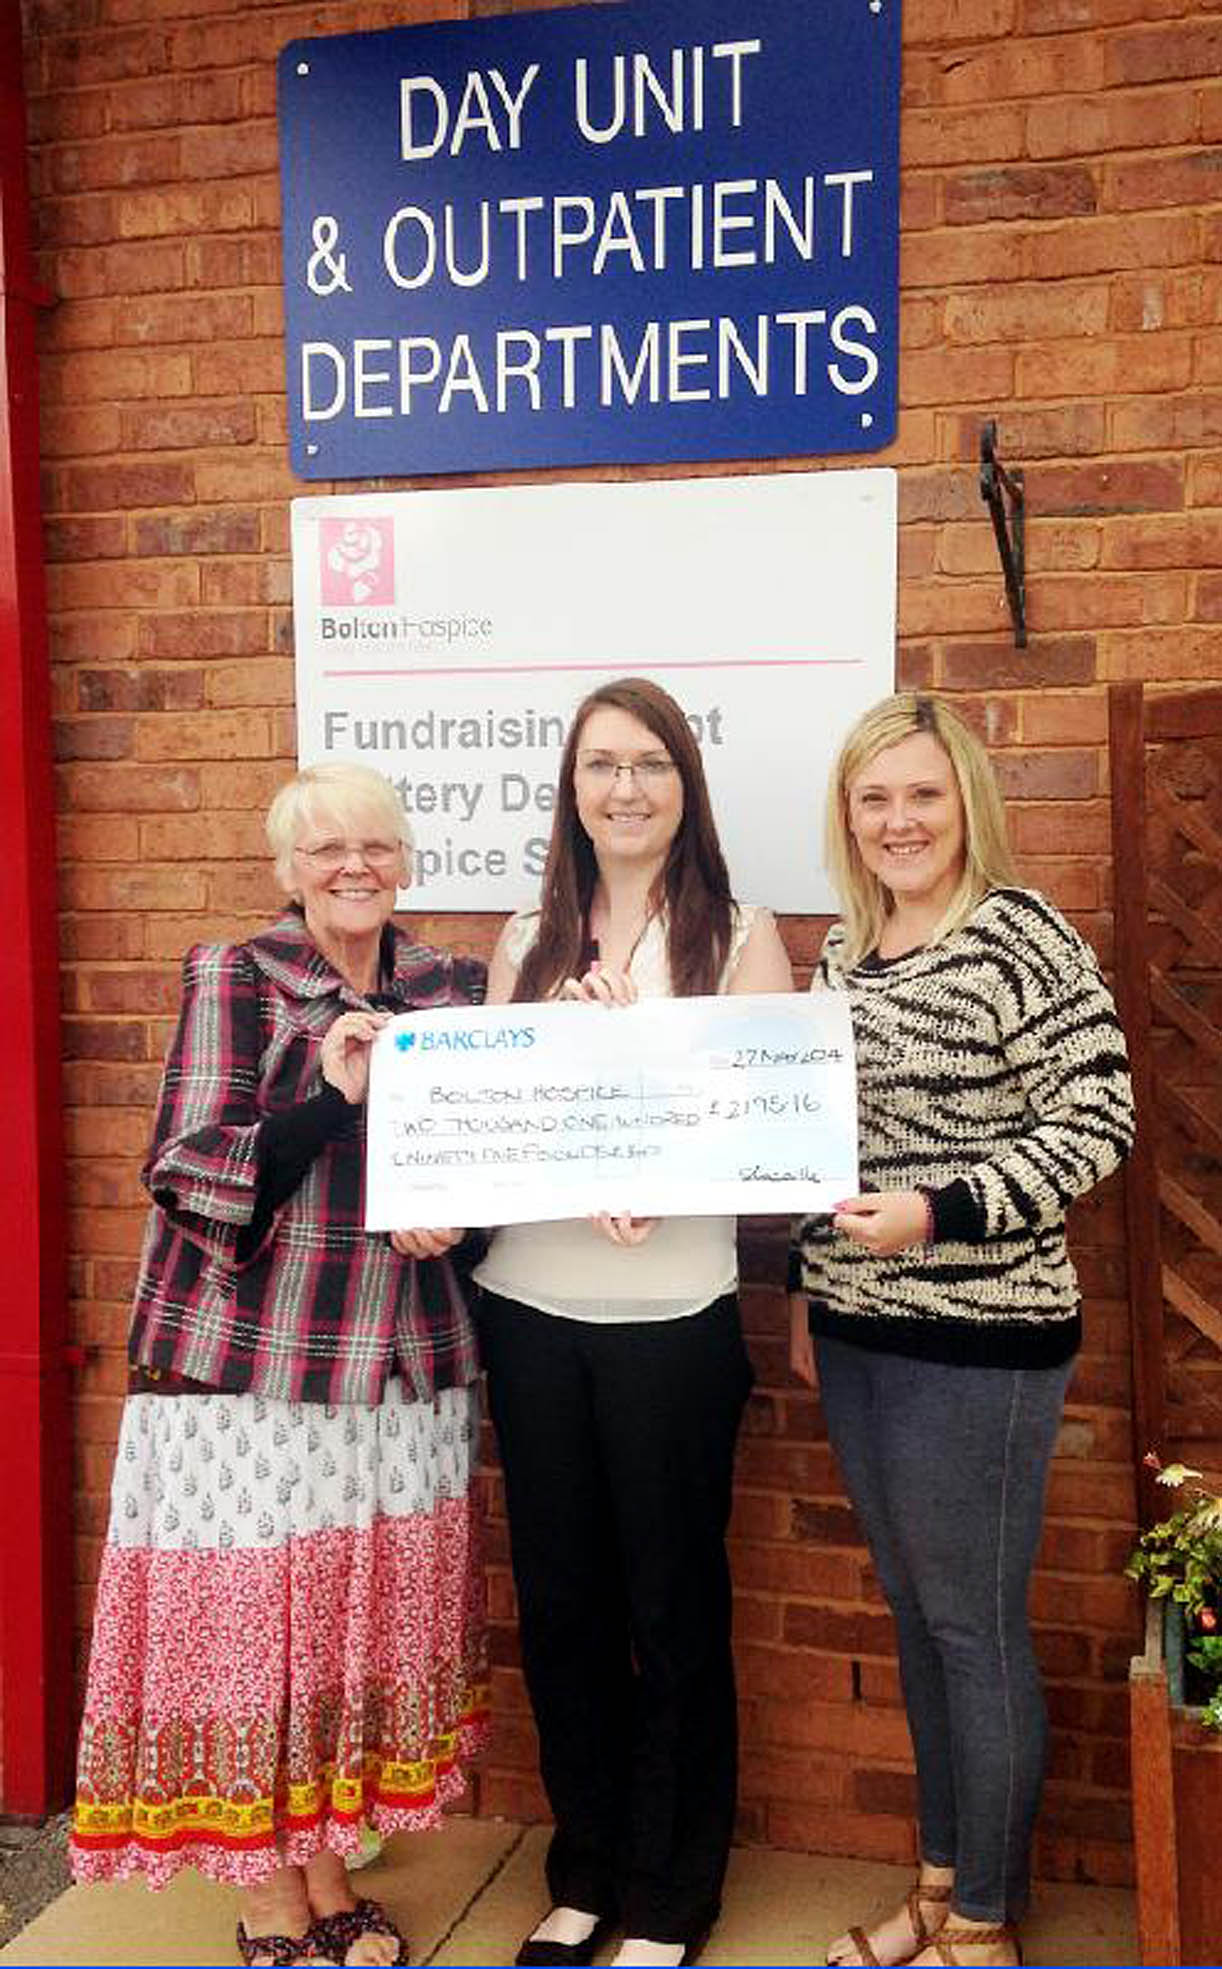 Ellen Keefe, left, and Sam Donnell, right, hand the cheque  to Stephanie Lacaille of Bolton Hospice